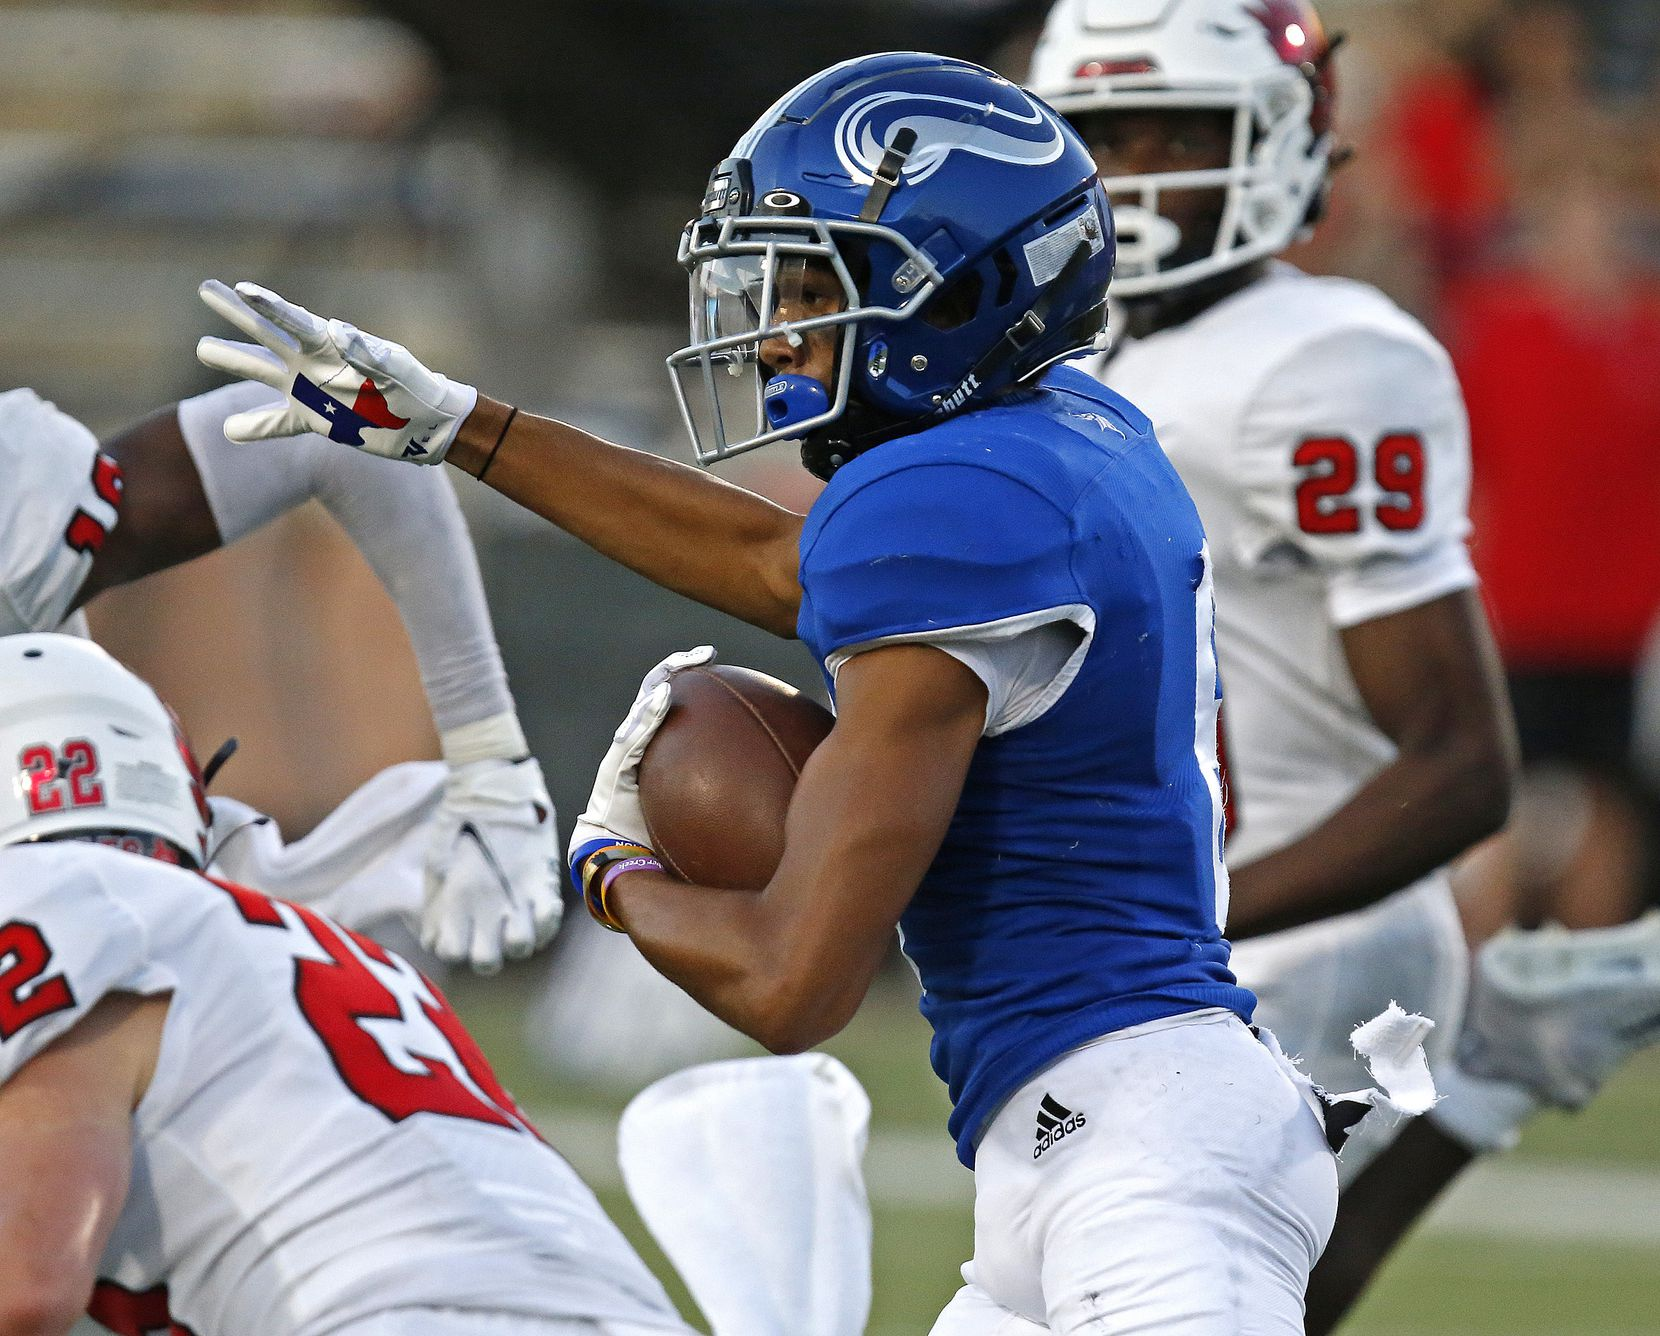 Nolan Catholic High School wide receiver Jaiden Burnett (6) runs after the catch during the first half as Argyle High School hosted Nolan Catholic High School at Eagle Stadium in Allen on Saturday evening, August 28, 2021. (Stewart F. House/Special Contributor)